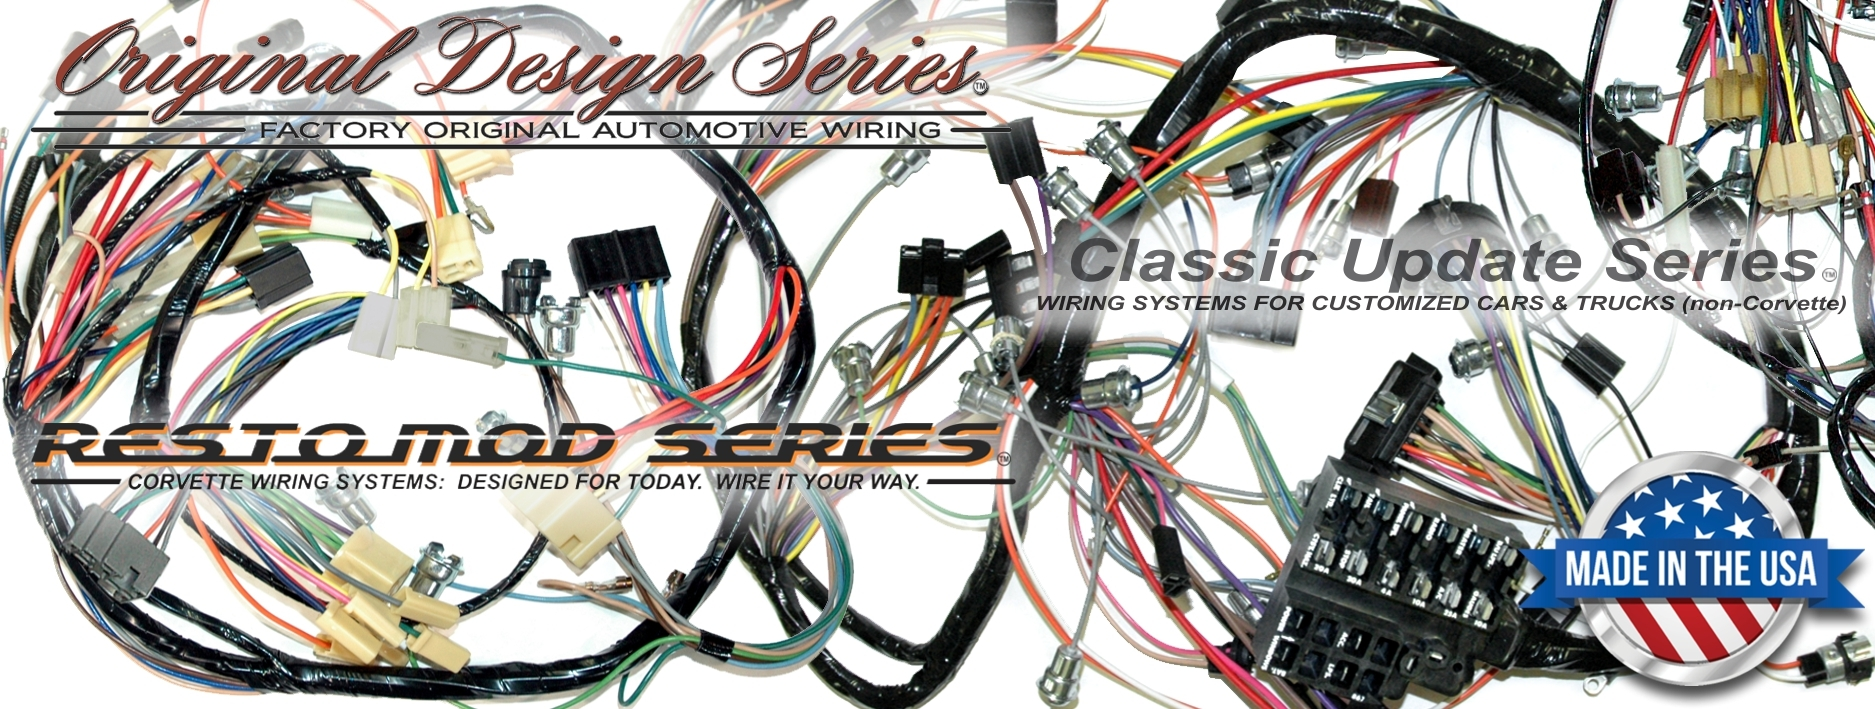 exact oem reproduction wiring harnesses and restomod wiring systems rh lectriclimited com electrical wire harness electrical wire harness inspection